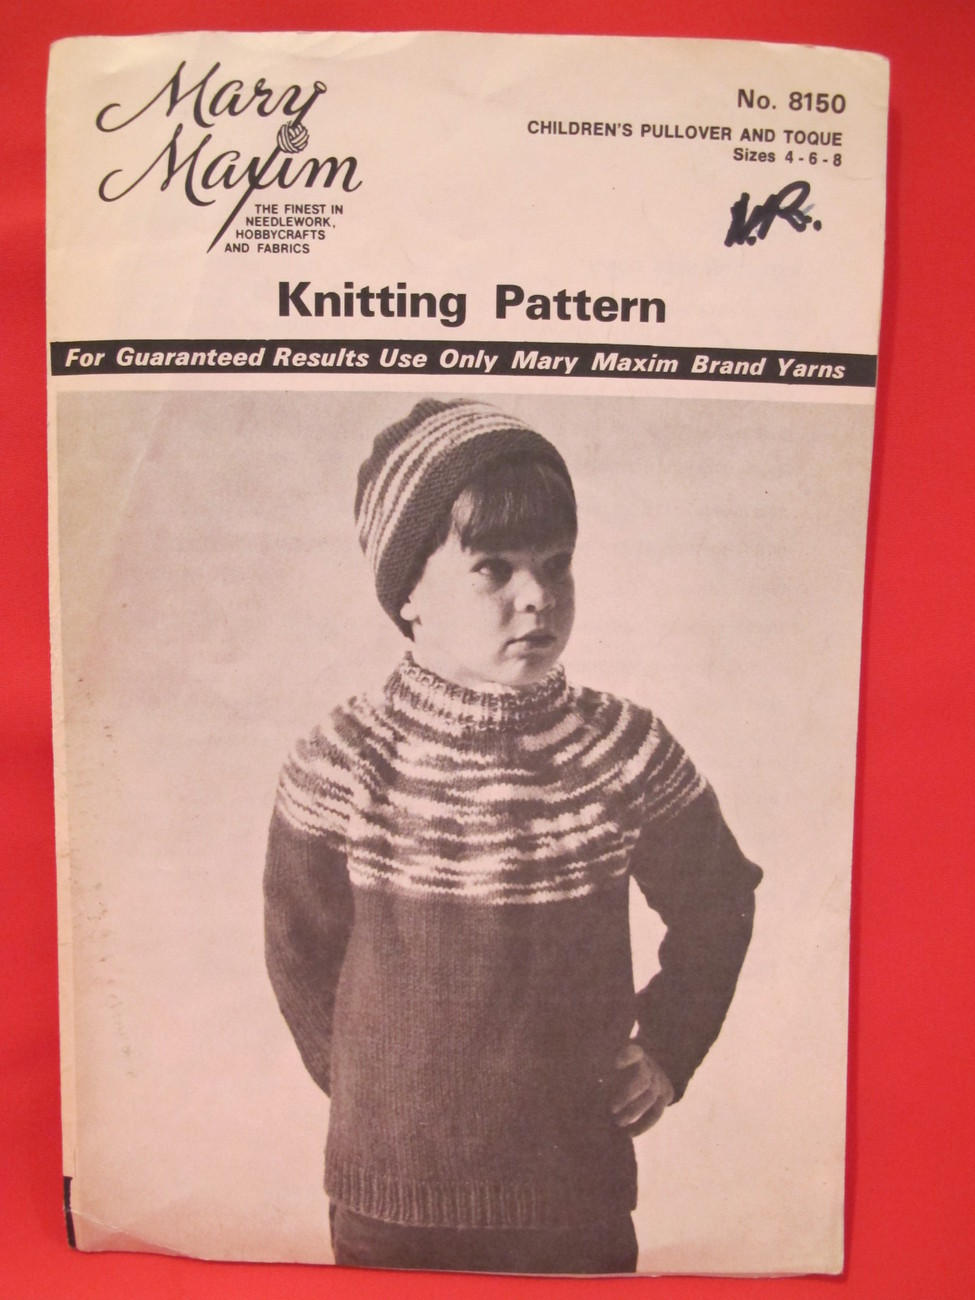 Vintage Mary Maxim Knitting Pattern CHILDRENS Size 4 - 8 Pullover Sweater Toque